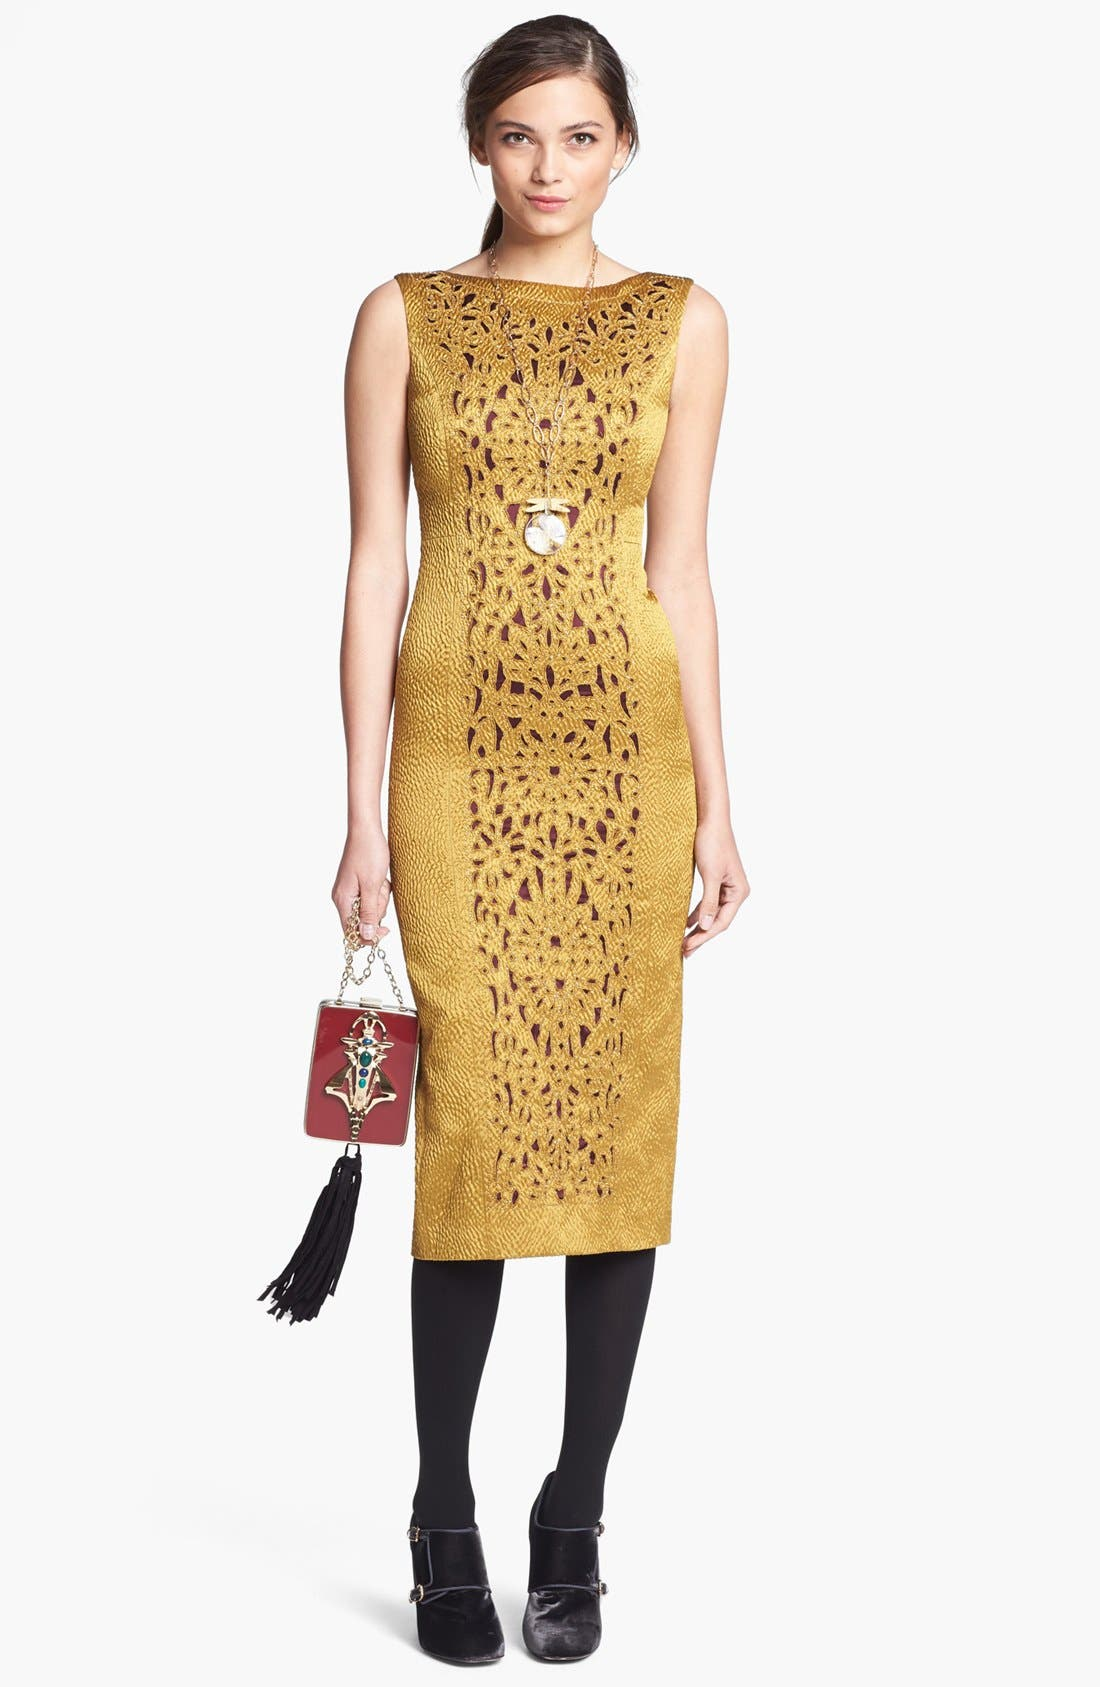 Alternate Image 1 Selected - Tory Burch Dress & Pump